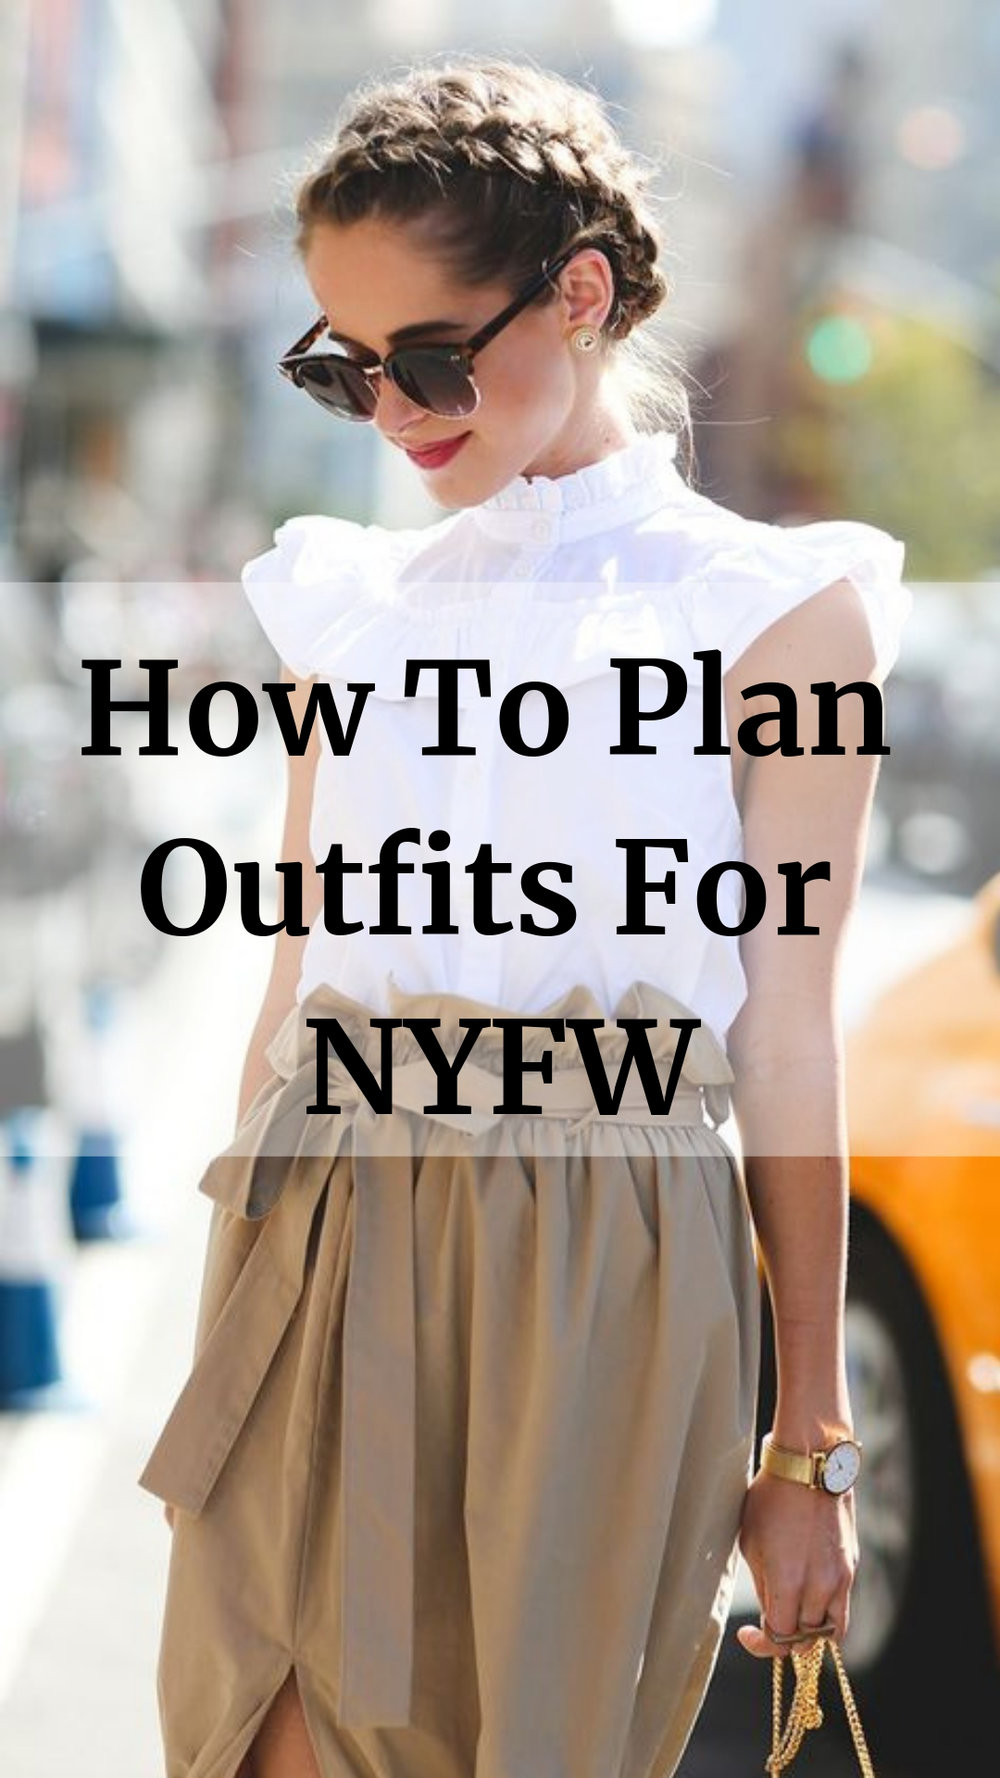 How To Plan Outfits For NYFW.jpg